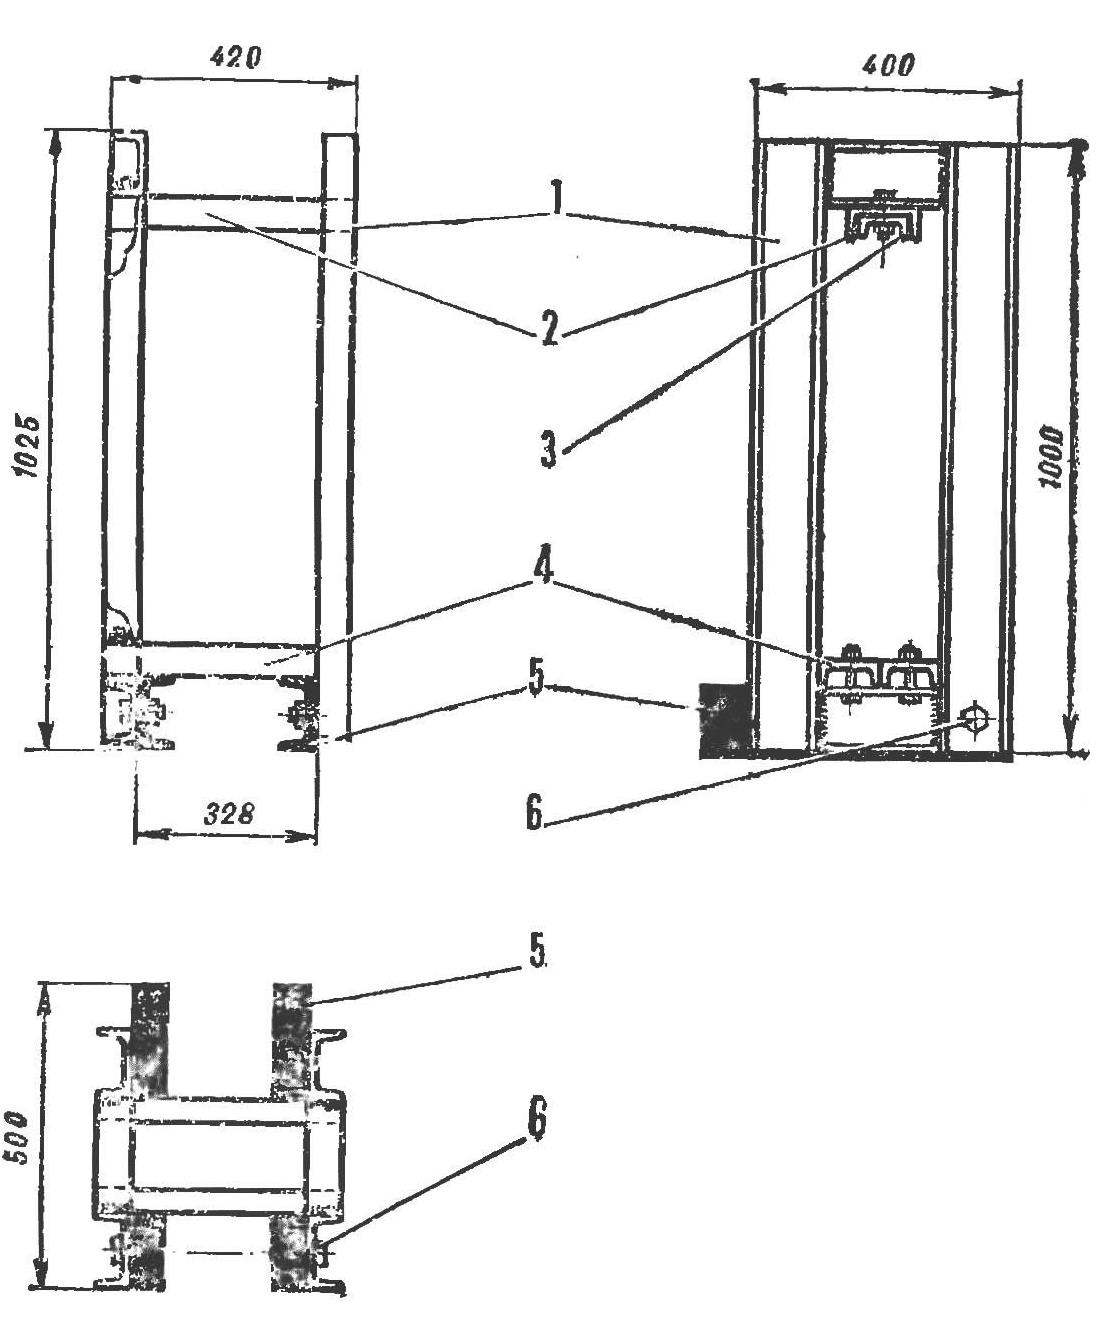 R and p. 2. Frame press